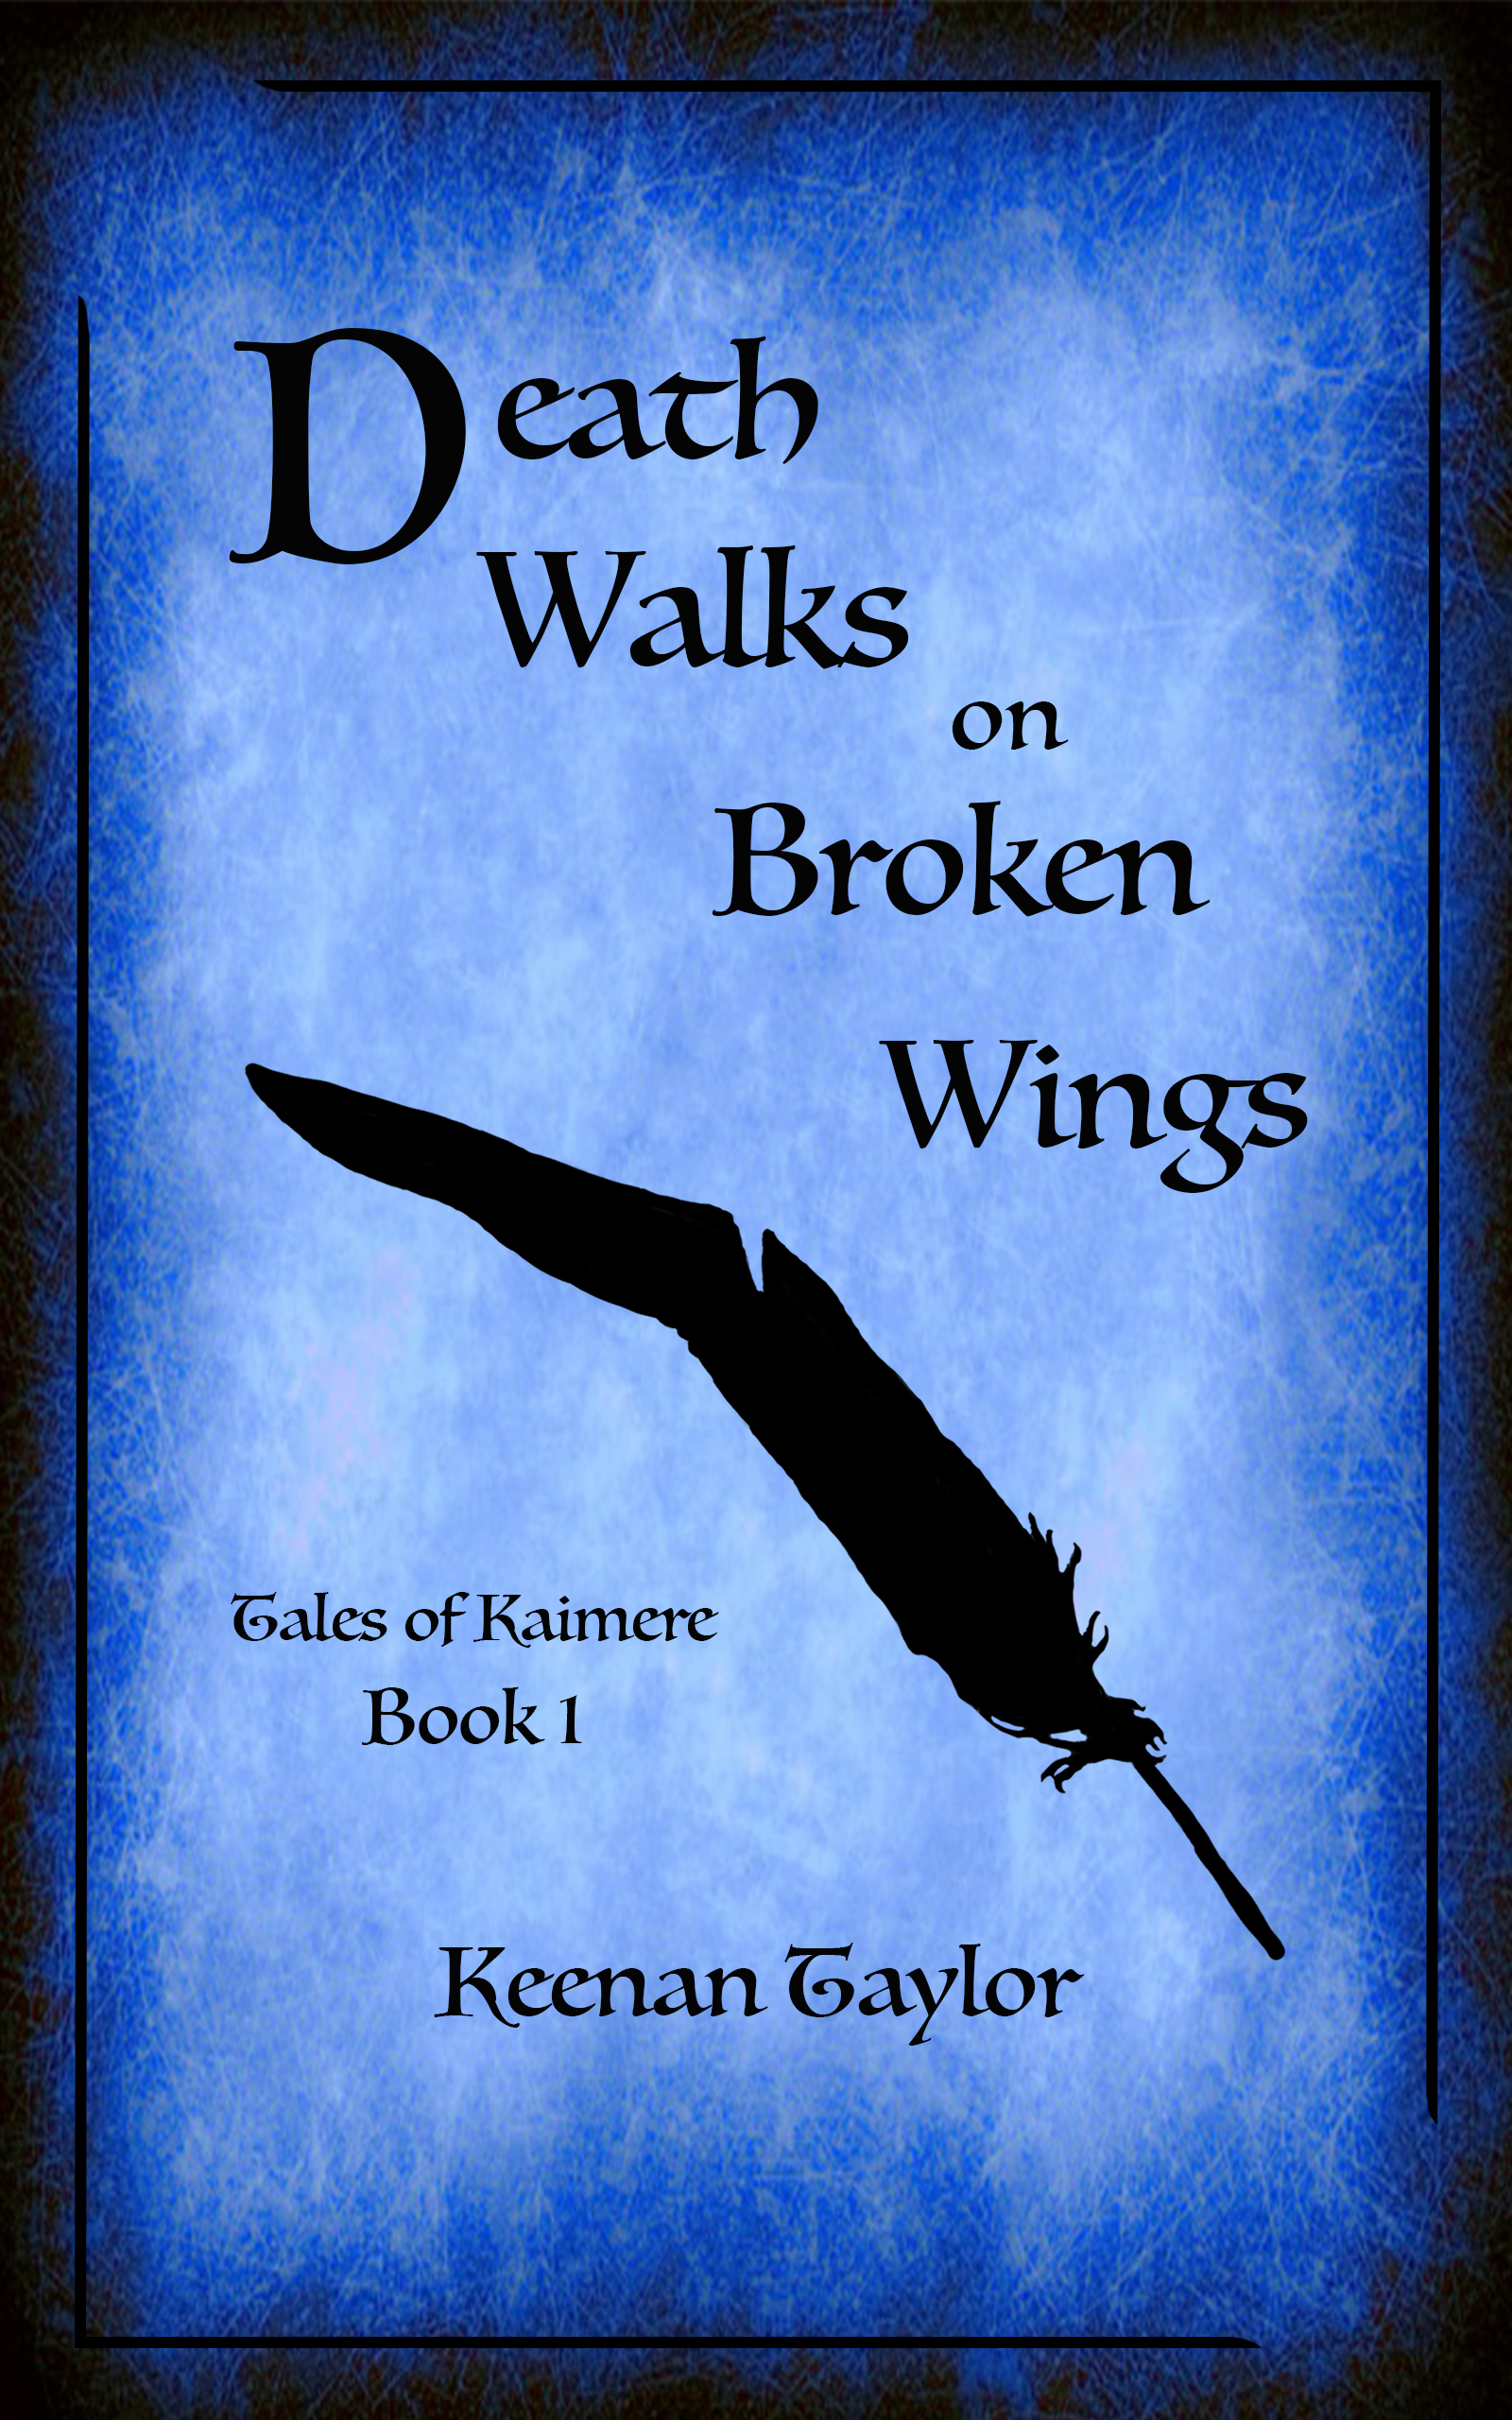 """The cover for my first short story, Death Walks on Broken Wings:  """"A ravenous and sadistic creature named Vaskalamaldus the Raven King has taken to rampaging through the Qajarith forest country. As Qajar is tied up in a long, brutal war, the Senate cannot spare forces to deal with a beast in the rural towns in the far north. The monster is unchecked. Now he kills for pleasure. Tsingus the Carpenter lost his family to the latest attack. Revenge consumes his thoughts. Hope for retribution comes in an unlikely ally, and Tsingus joins several other loggers in a desperate quest: end the reign of the Raven King.""""  Cheers, folks! -Keenan"""